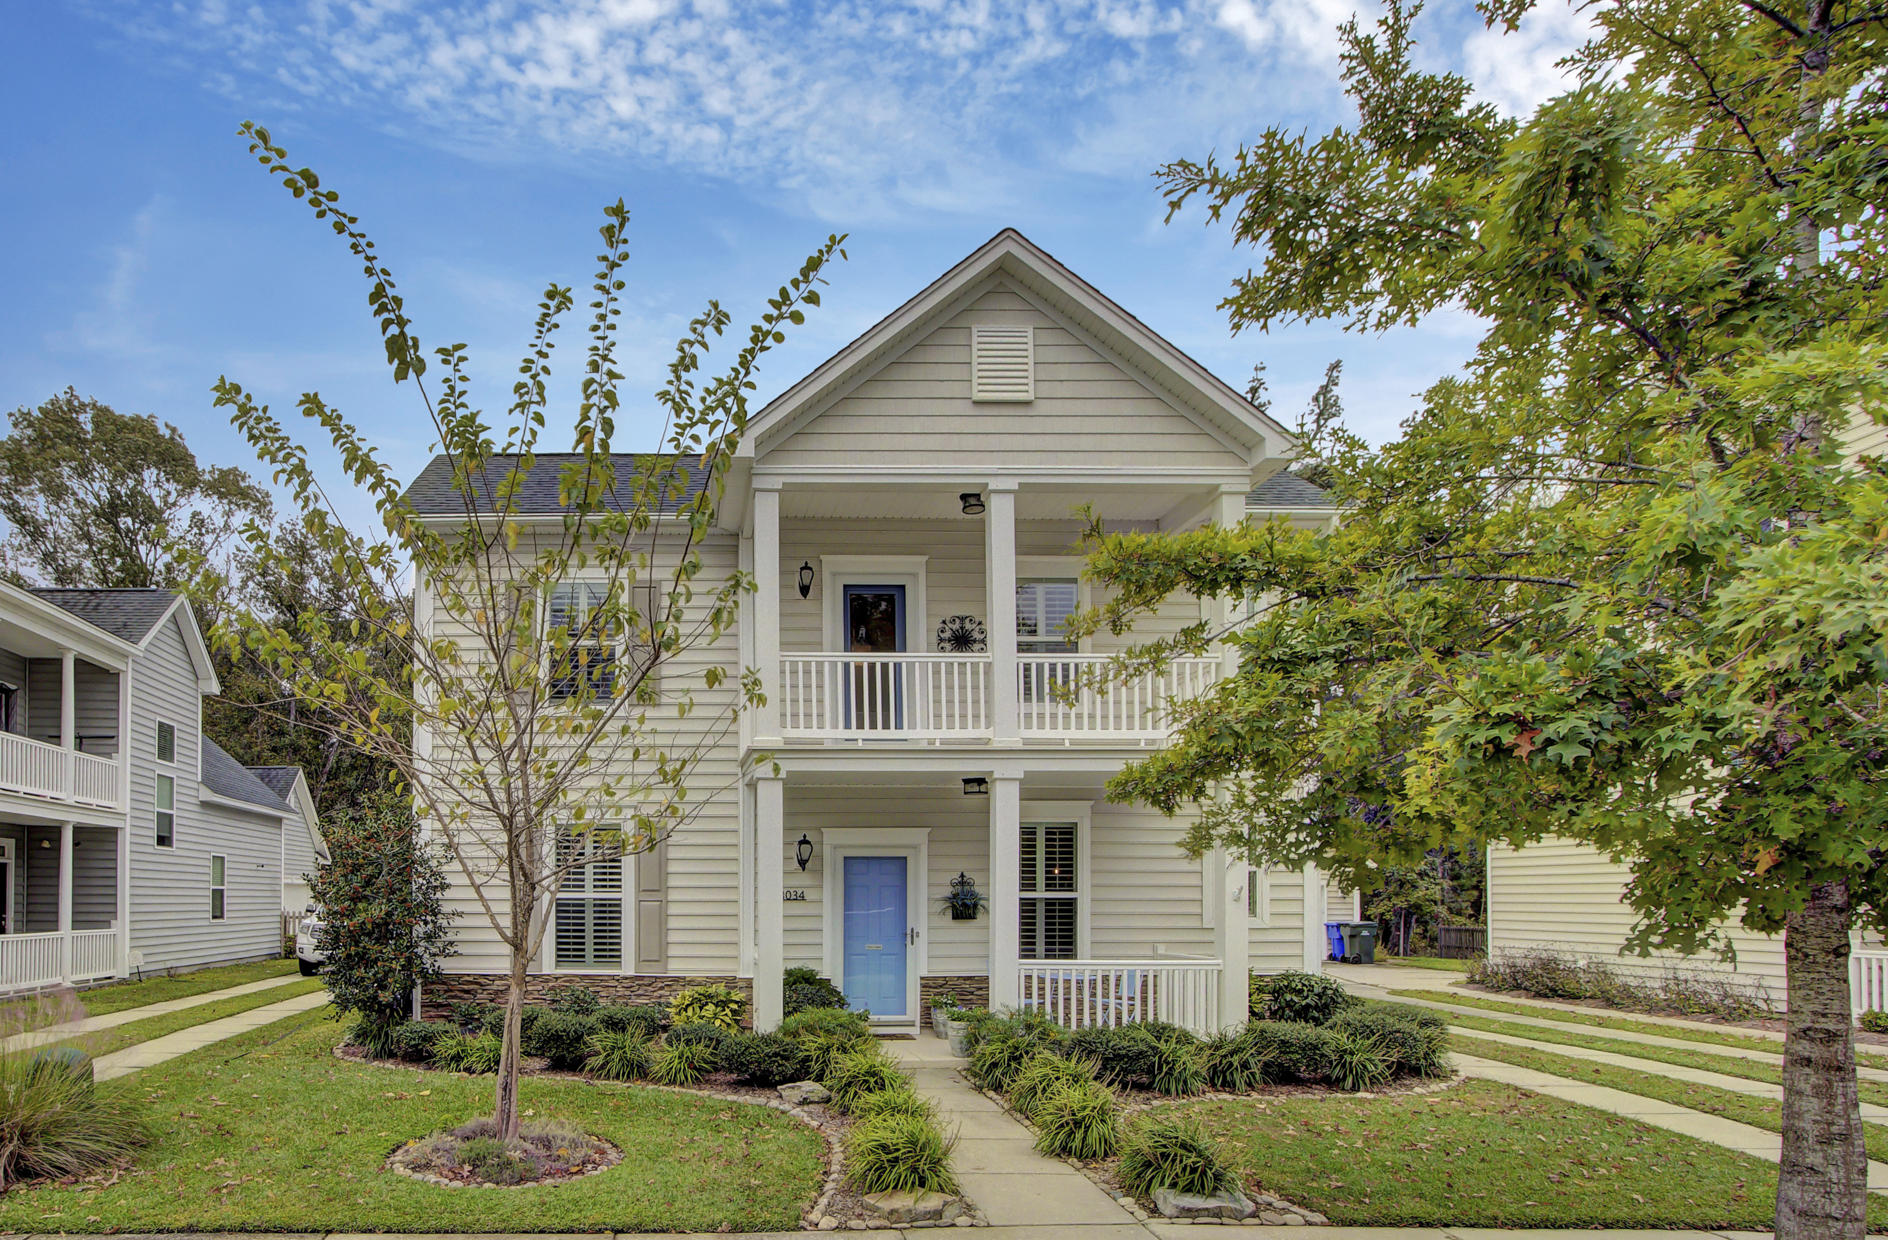 Boltons Landing Homes For Sale - 3034 Scuba, Charleston, SC - 14